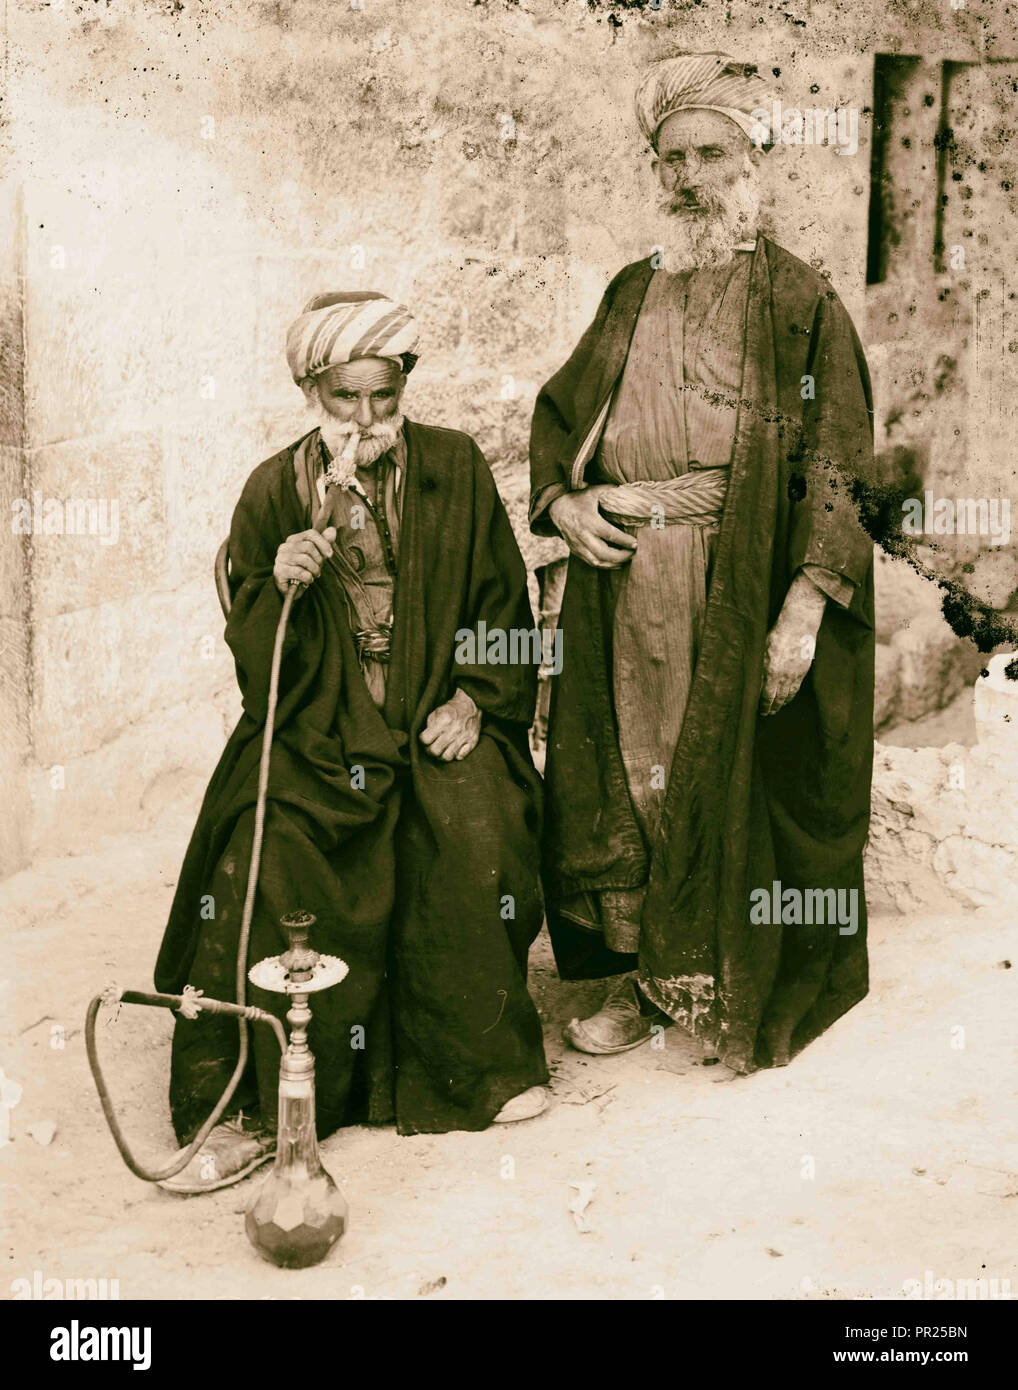 Costumes, characters and ceremonies, Bethlehemite. 1898, West Bank, Bethlehem, Israel - Stock Image